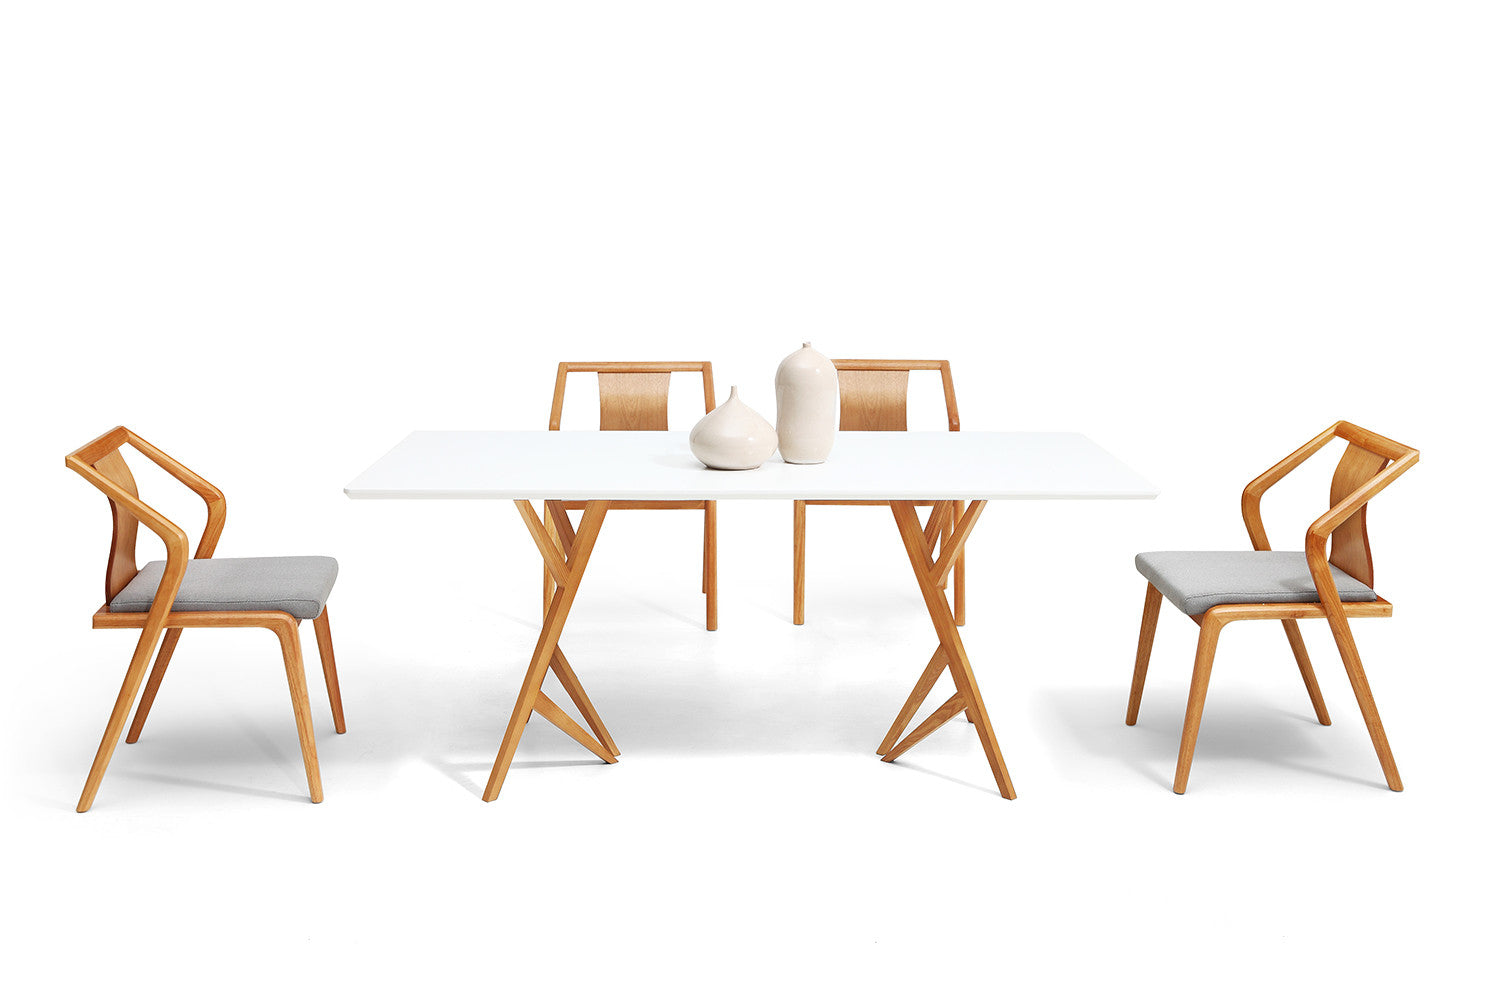 Table de salle manger design scandinave vispa dewarens for Salle a manger en solde